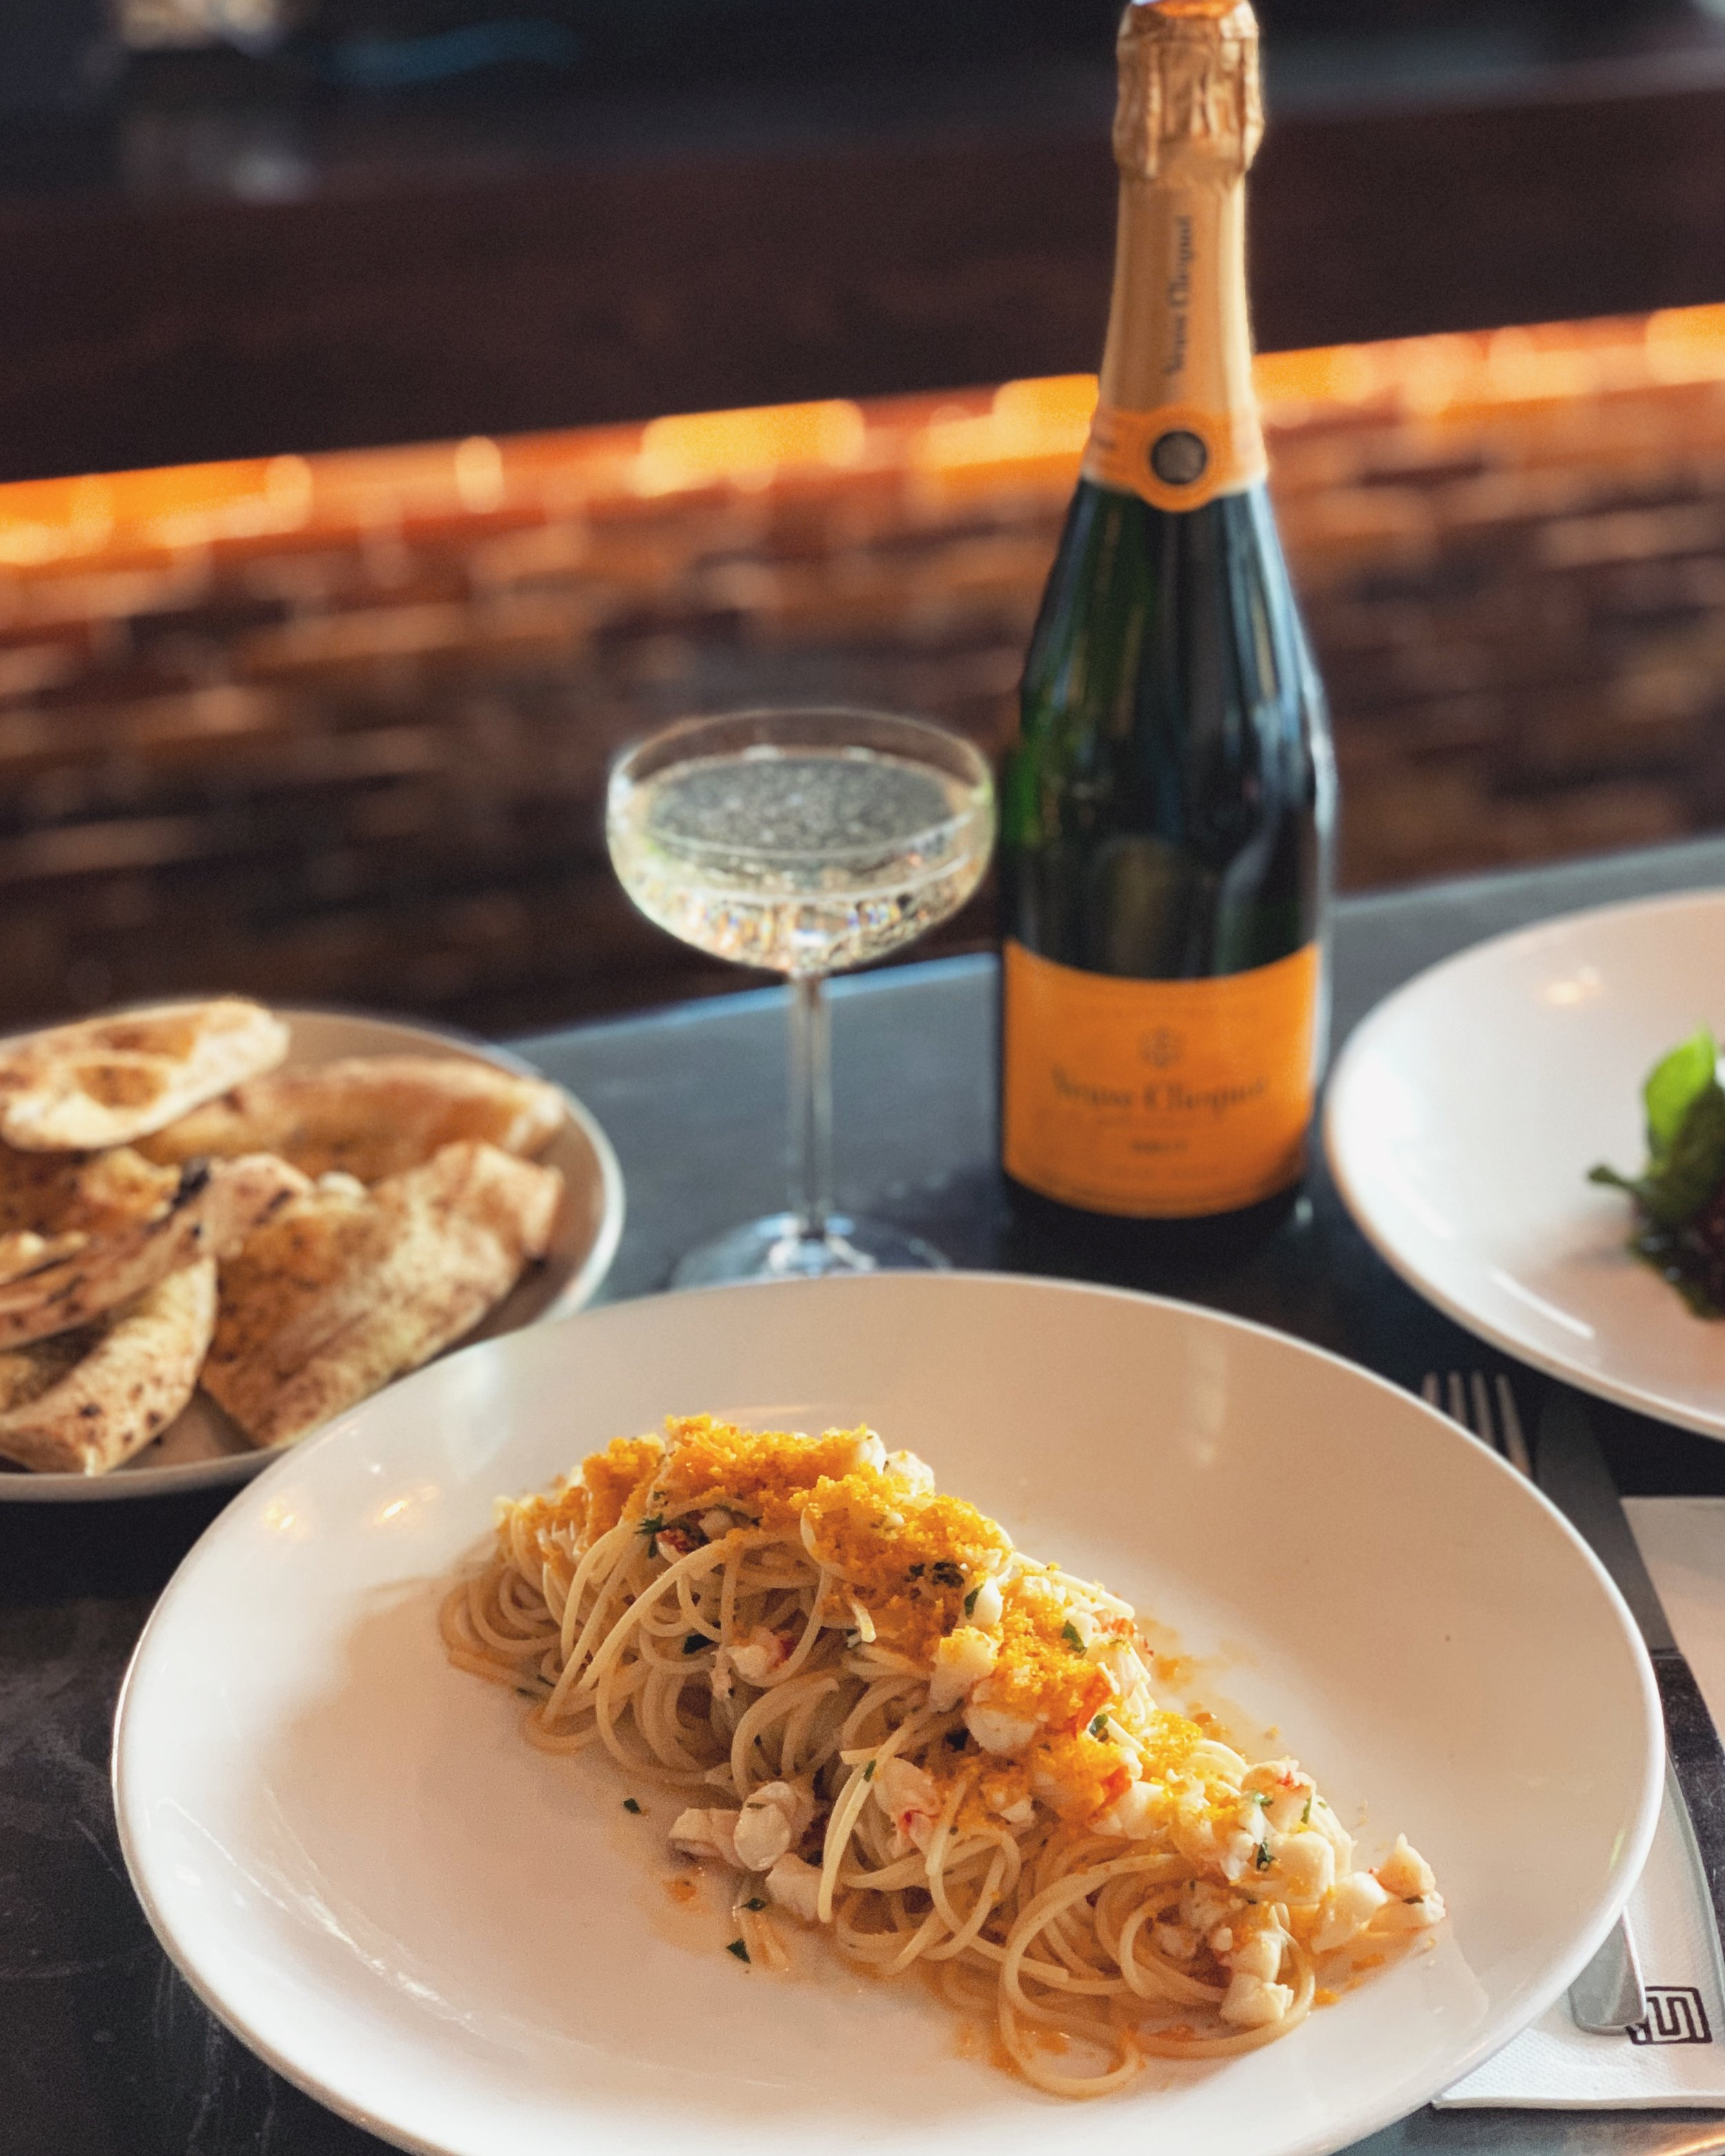 7-13 August - A very special special this week as to raise the bar in quality and rarity..~ CHAMPAGNE LOBSTER SPAGHETTINI ~// Homemade spaghettini, champagne lobster, Sicilian bottarga, seafood bisque, lemon butter, garlic & chilli. //.Of course, best enjoyed with a glass of champers, which, by the way, for this week only, we'll be serving by the glass 🥂 cin-cin!